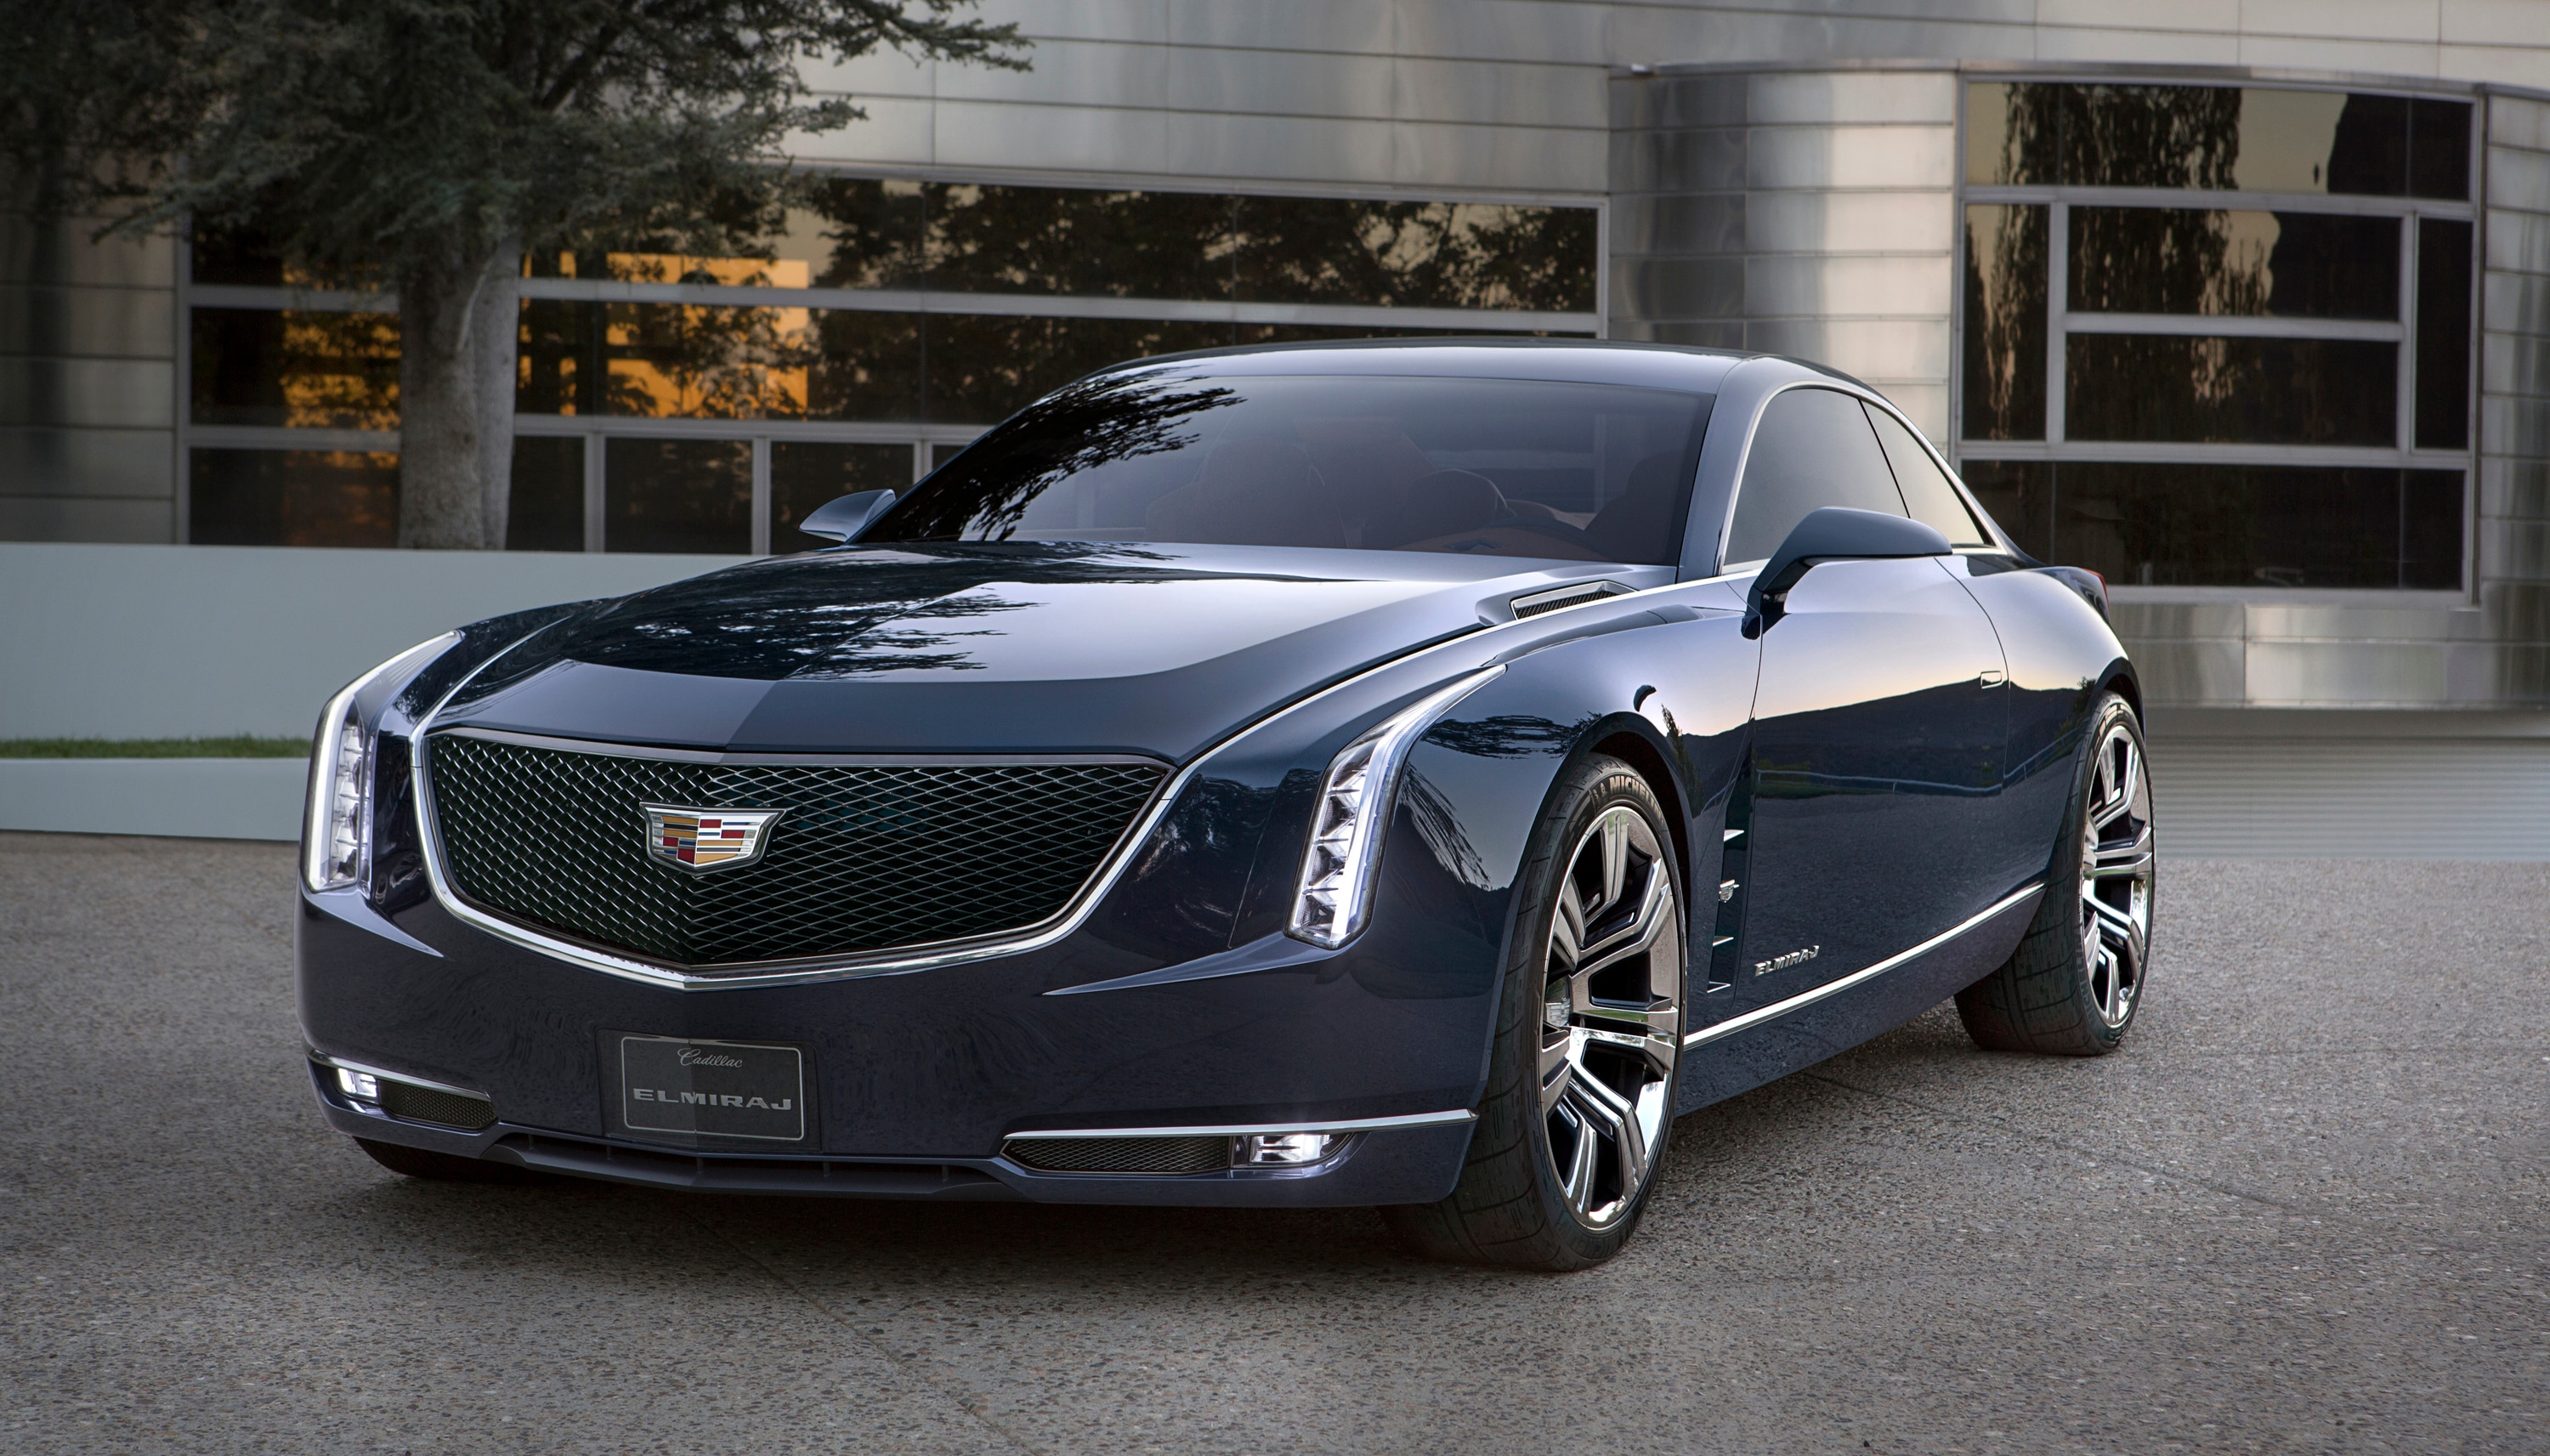 Cadillac today revealed the elmiraj concept a grand coupe expressing the pure enjoyment of driving and exploring new dimensions for cadillac s ongoing